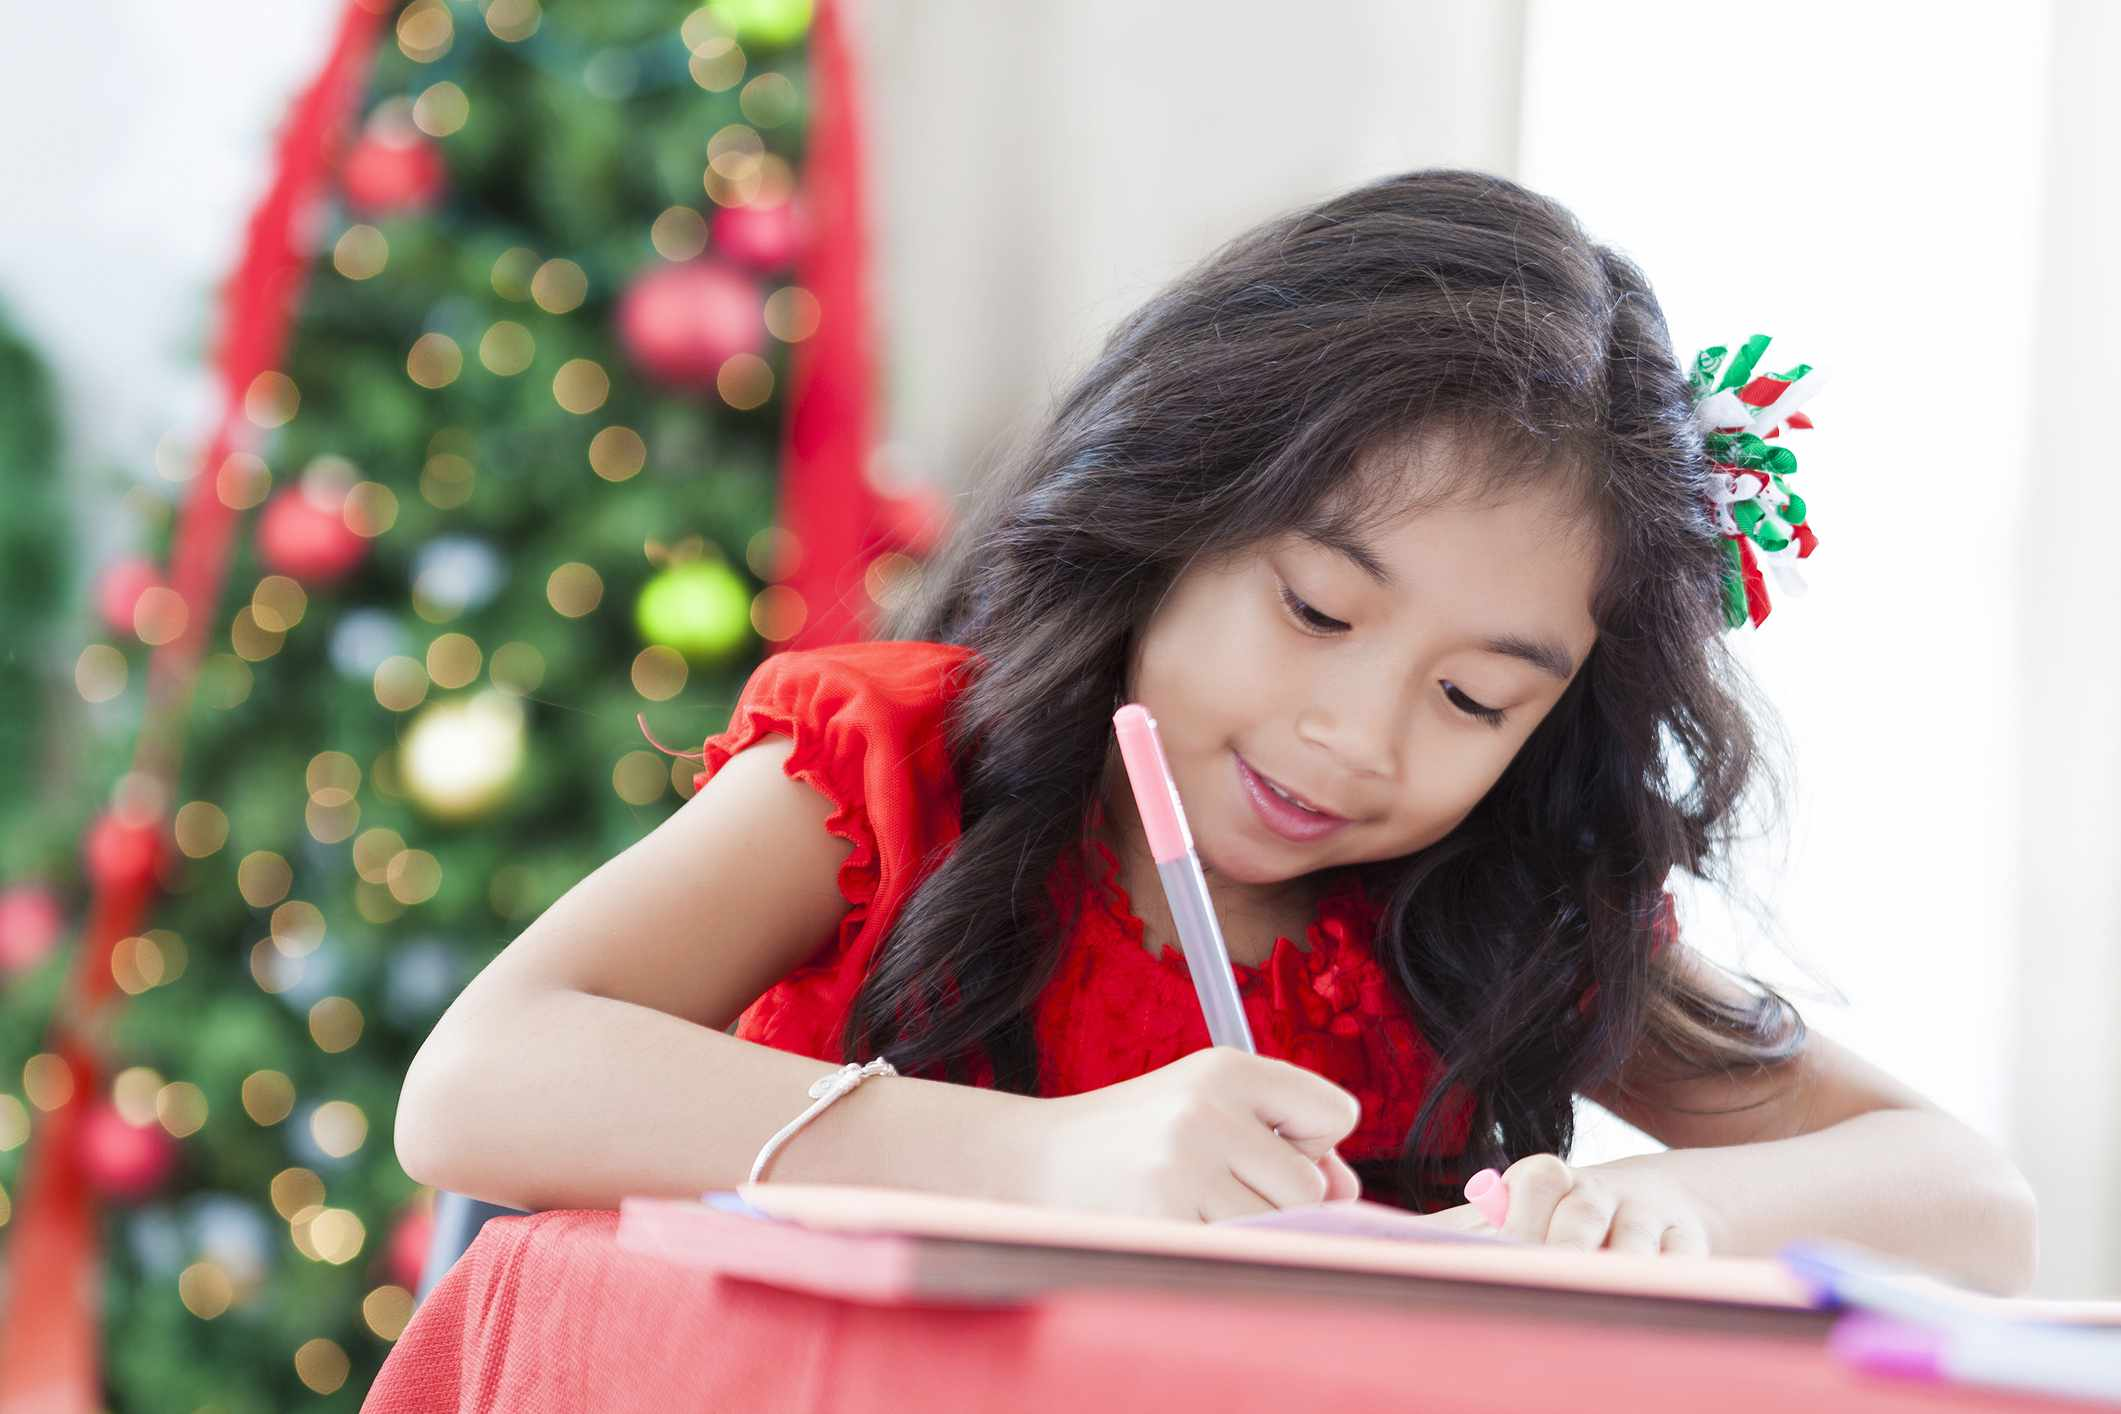 A young girl writing in front of a Christmas tree